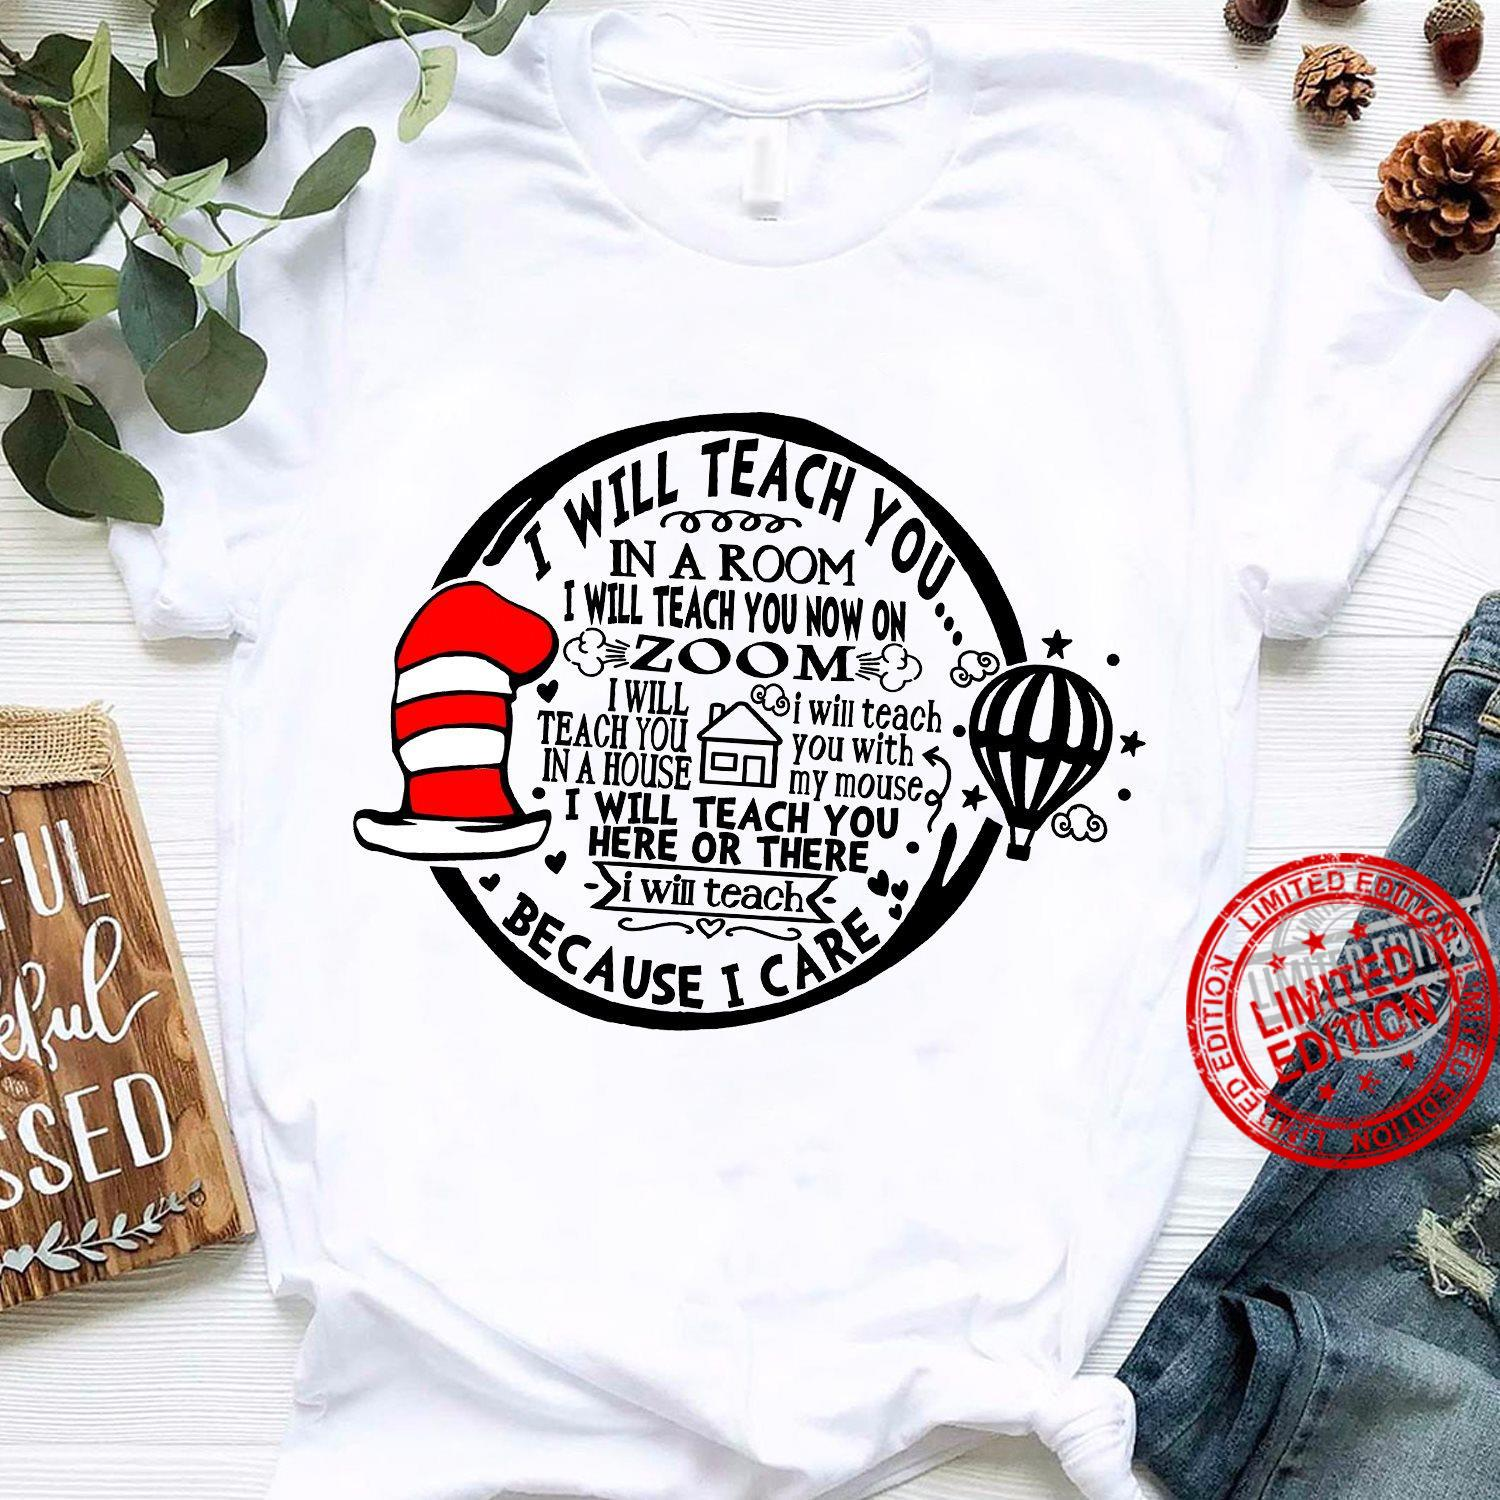 I Will Teach You In A Room I Will Teach You Now On Zoom I Will Teach You Here Or There Because I Care Shirt